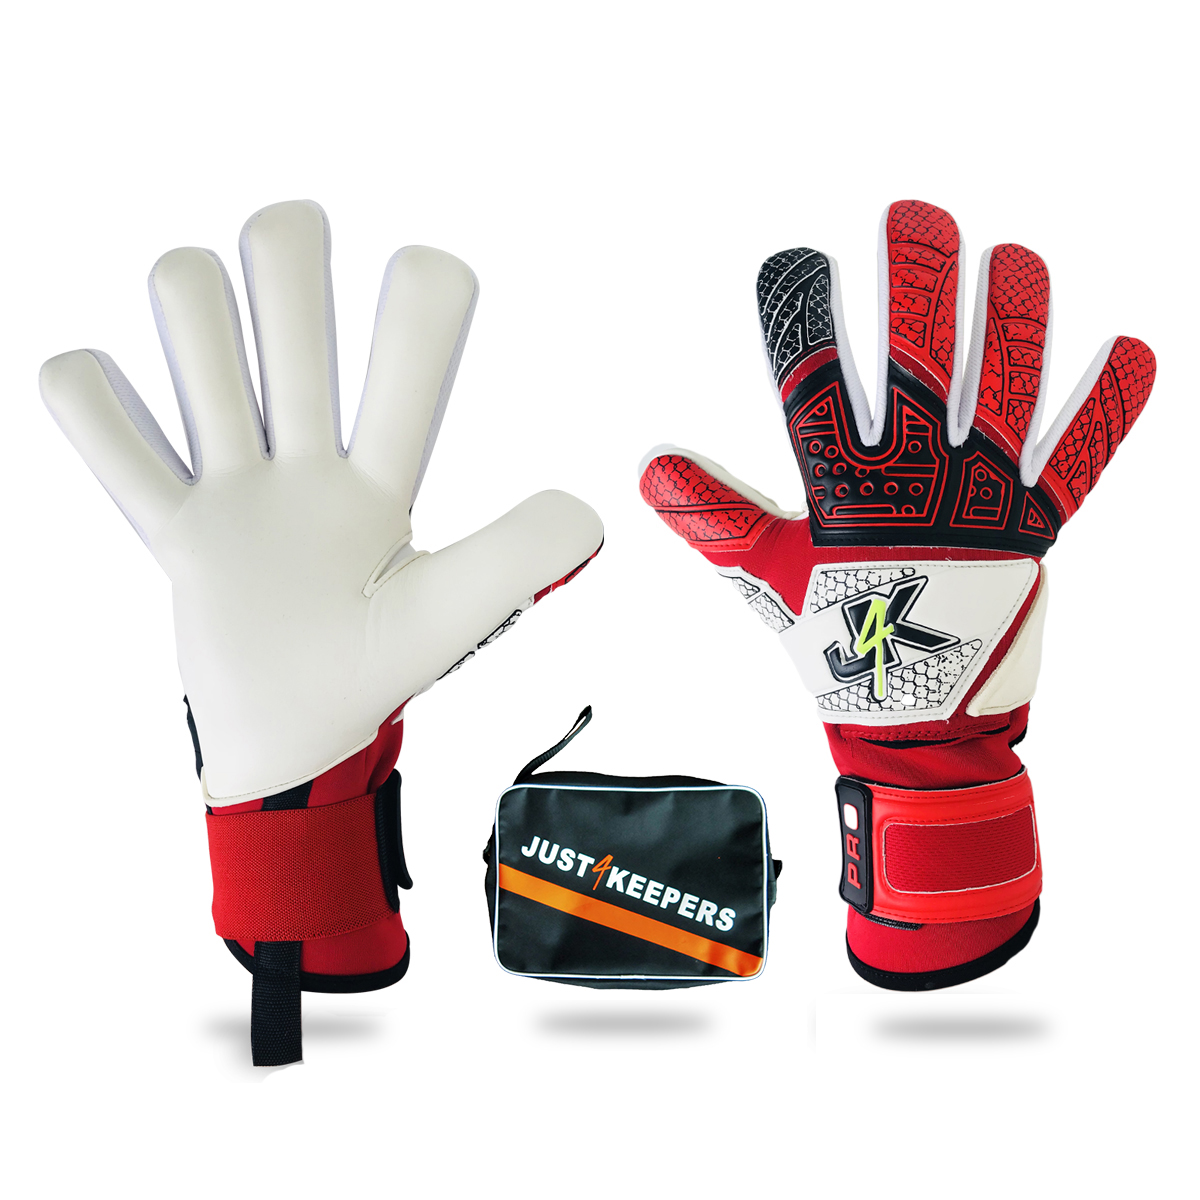 J4K PRO NEG - PLUS FREE GLOVE BAG WORTH £9.99